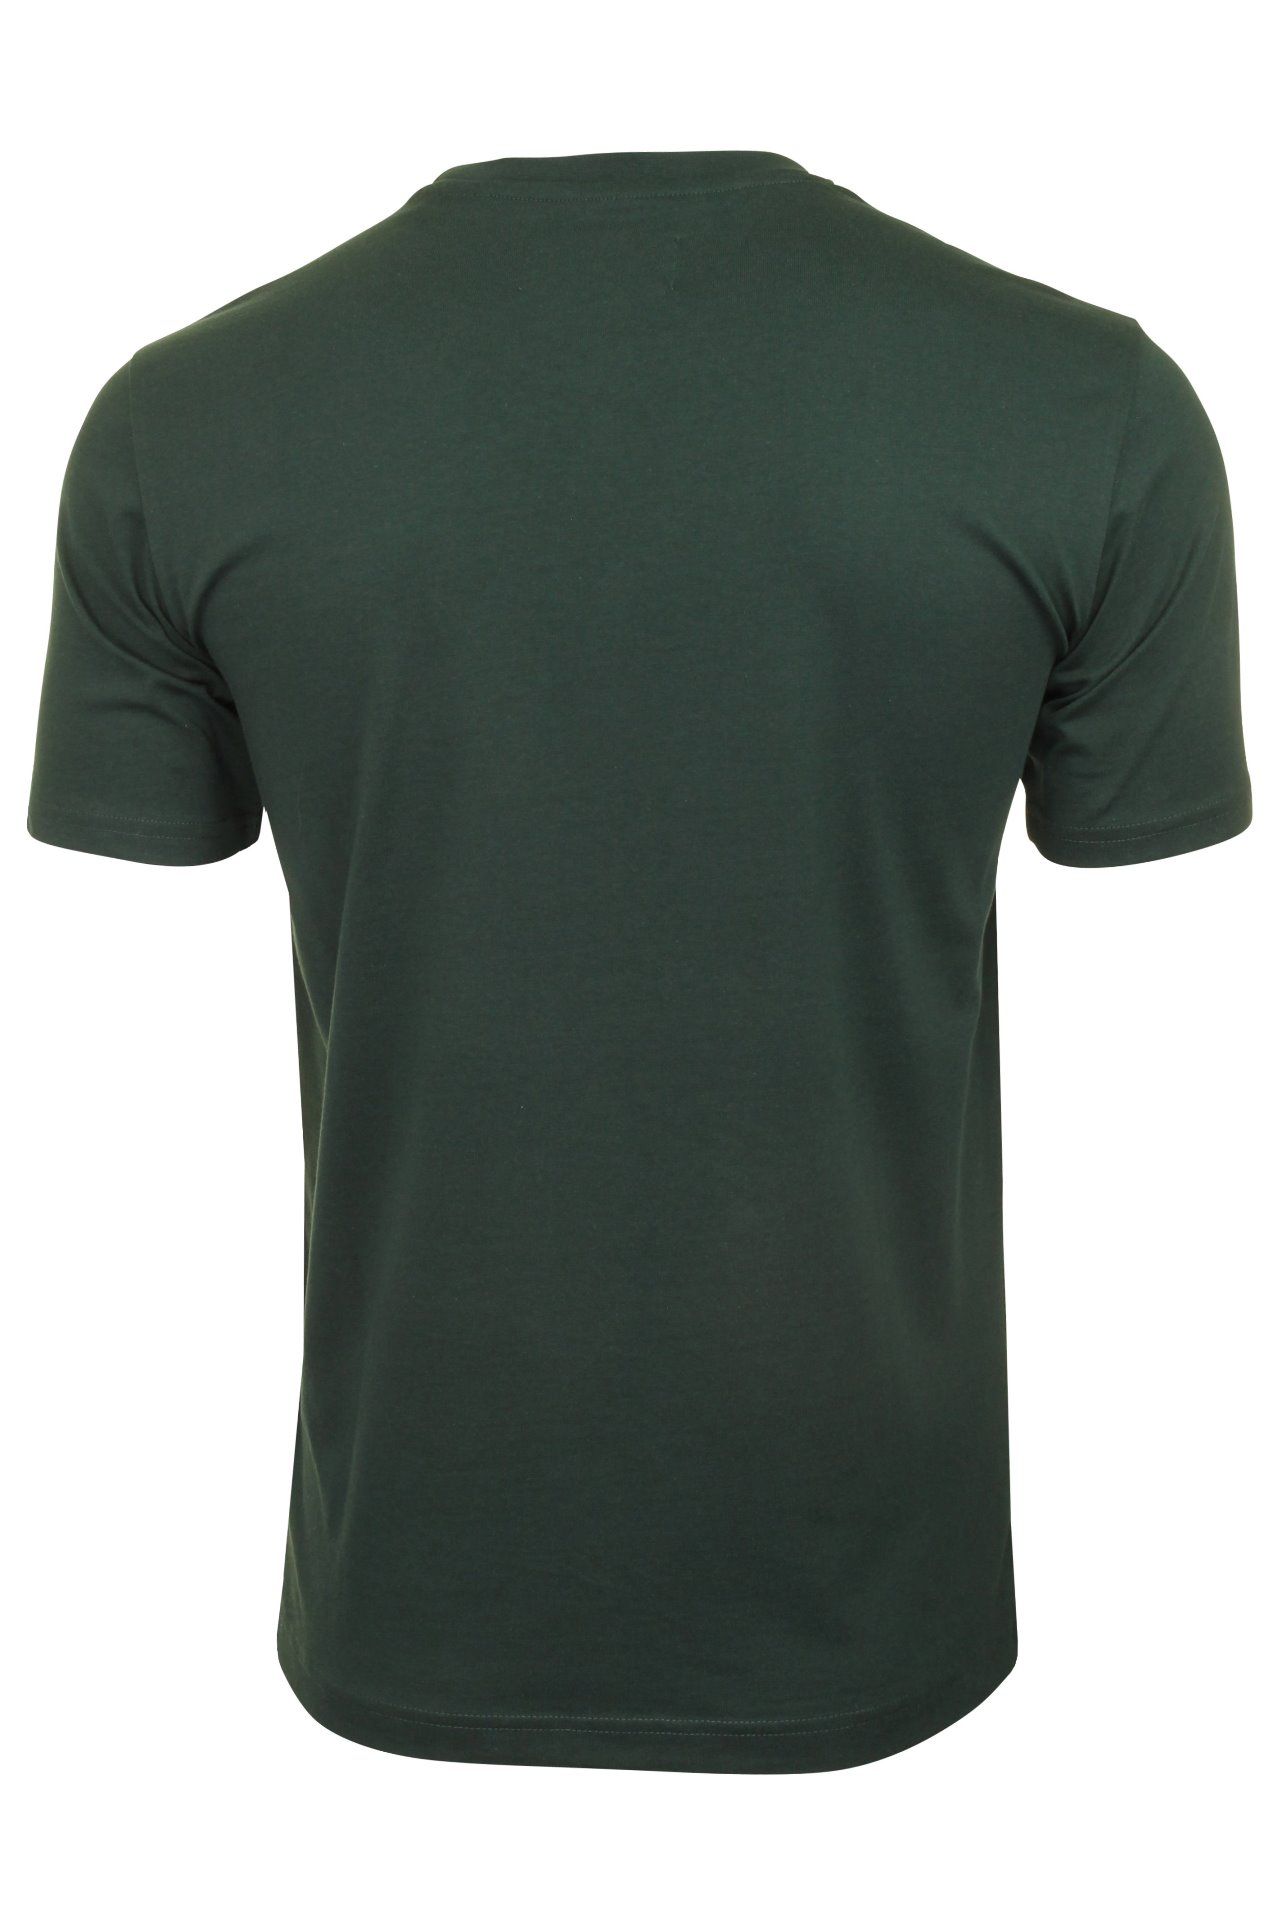 Original-Penguin-Mens-T-Shirt-039-Pin-Point-Embroidered-039-Short-Sleeved thumbnail 8